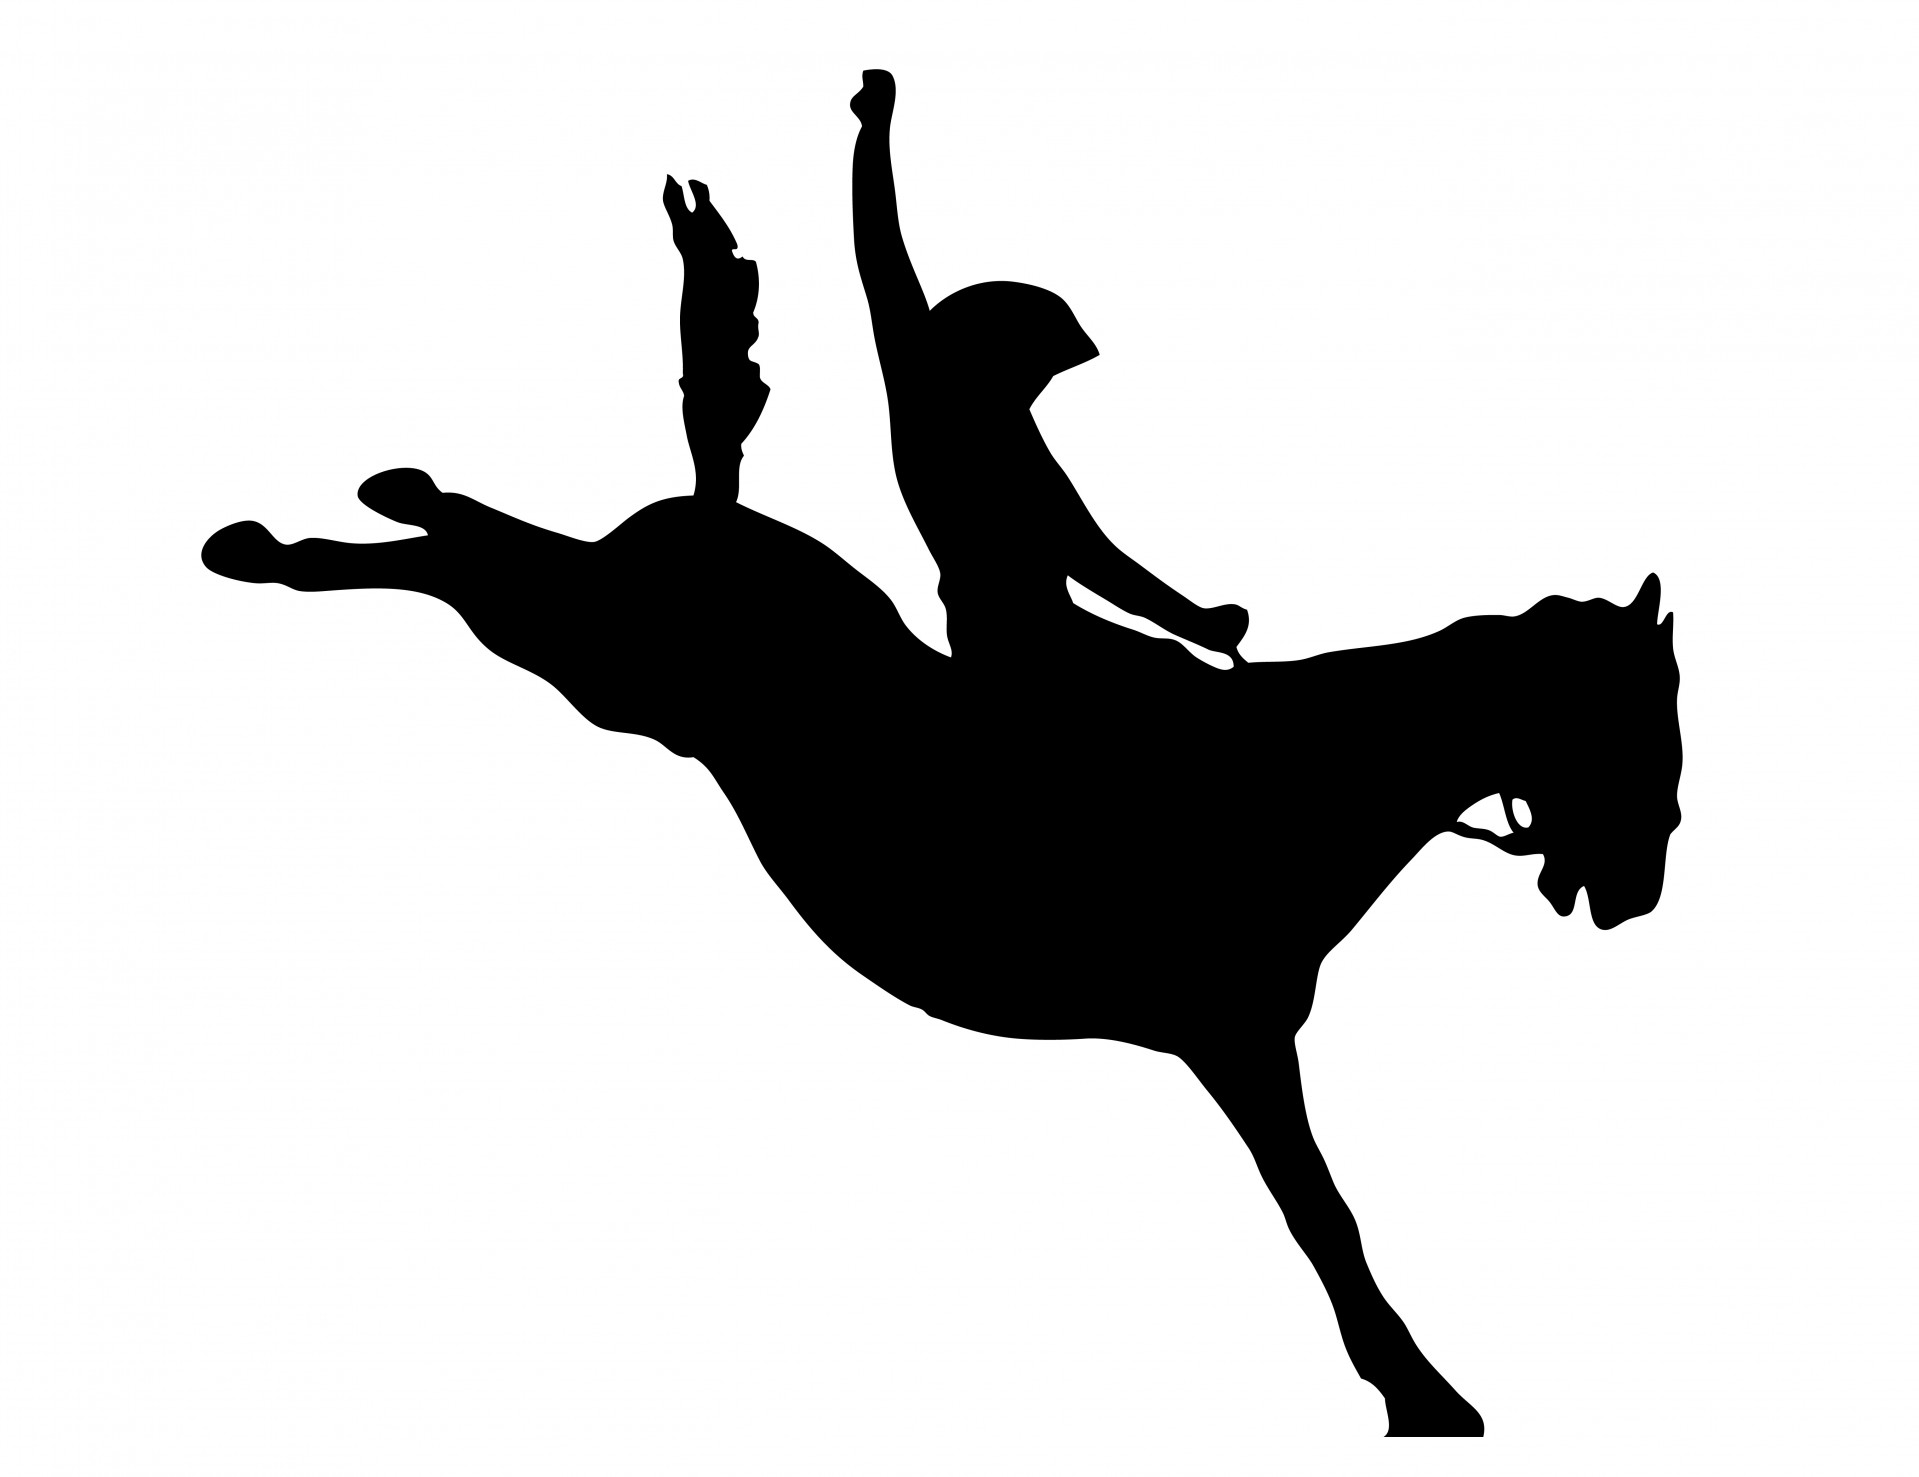 rodeo silhouette clipart clipart suggest Rodeo Cowboy Clip Art Rodeo Cowboy Clip Art